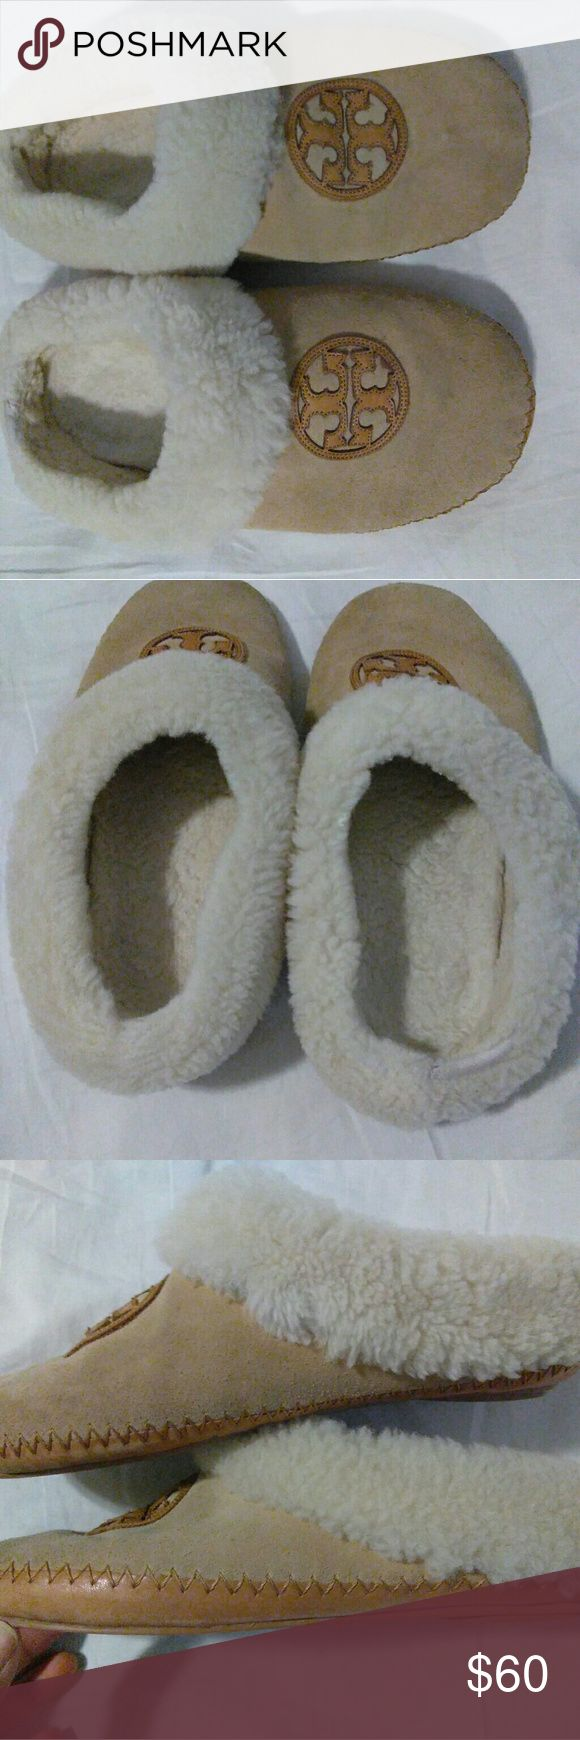 """1/9  Tory Burch Coley' Genuine Shearling Slipper s The signature logo brands an ultra-cozy slipper lined in plush, moisture-wicking shearling.  Leather and genuine shearling upper/genuine shearling lining/rubber sole.Imported.Salon Shoes. """"Used"""""""" comfortable slippers size. 9.5 please view photos carefully any questions please ask... Thank you.   Tory Burch Shoes Slippers"""